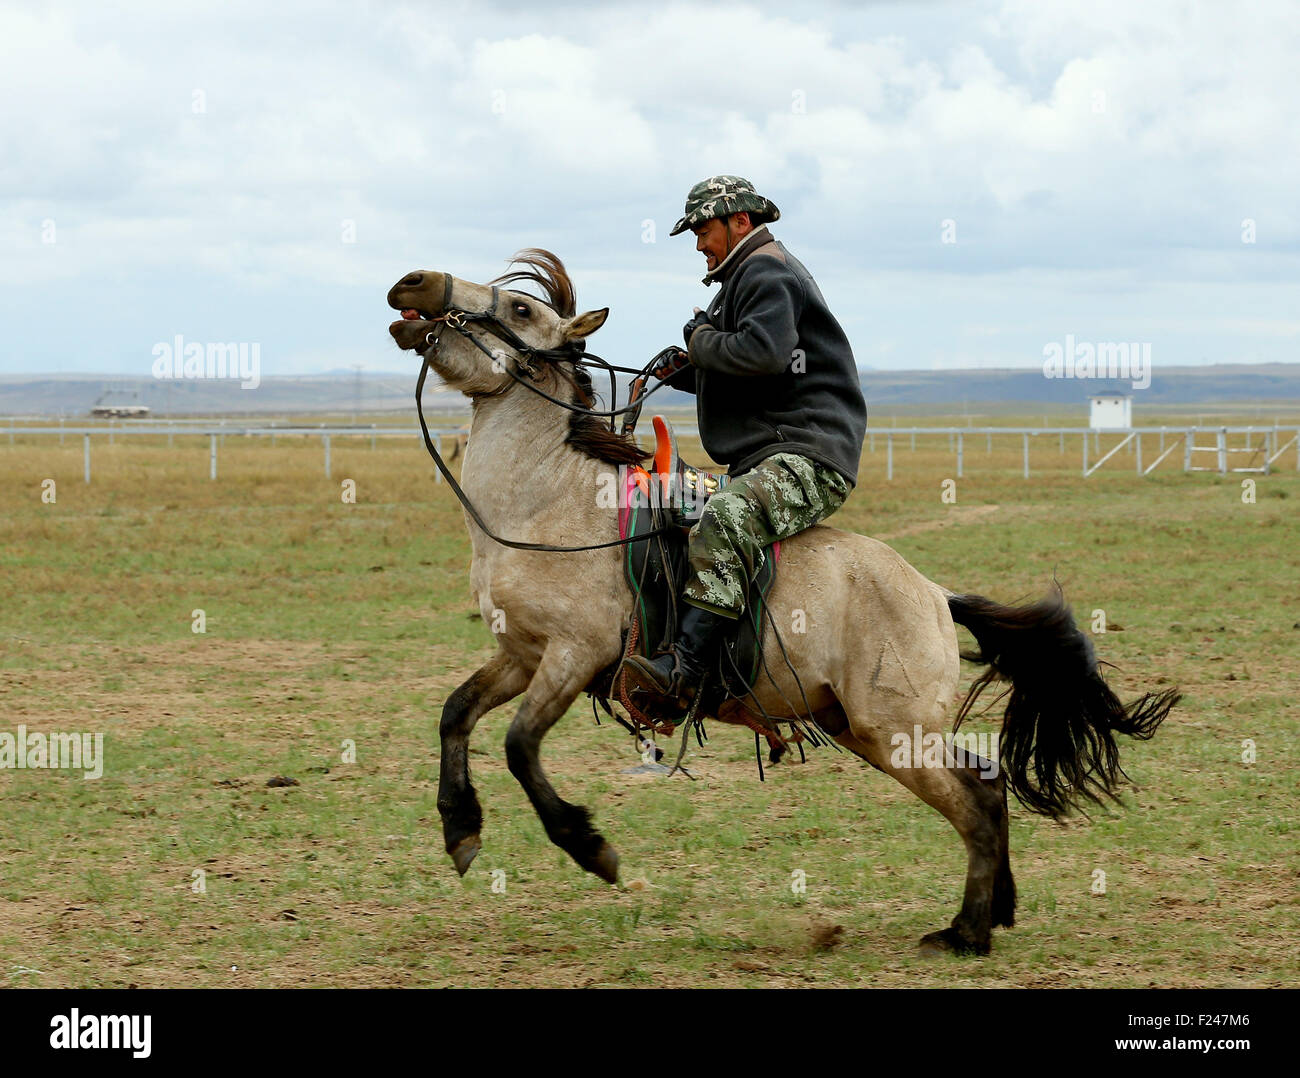 Xilin Gol. 11th Sep, 2015. A Mongolian rider tames a horse at the Phoenix Horse Field in the suburb of Xilin Hot - Stock Image